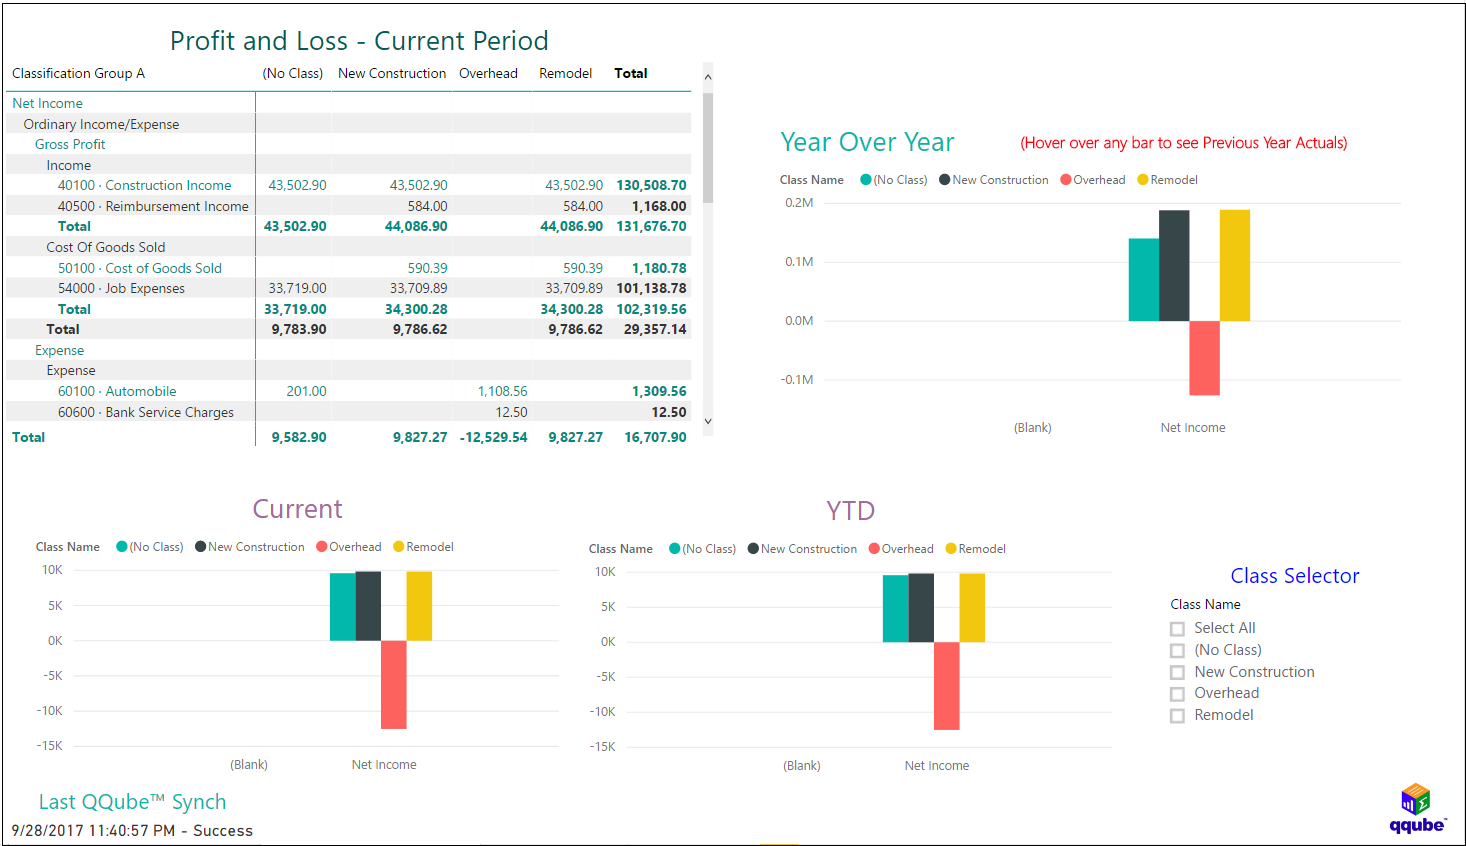 QQube and Power BI - Profit and Loss by Class (Comparison) for 52/53 Tax Year